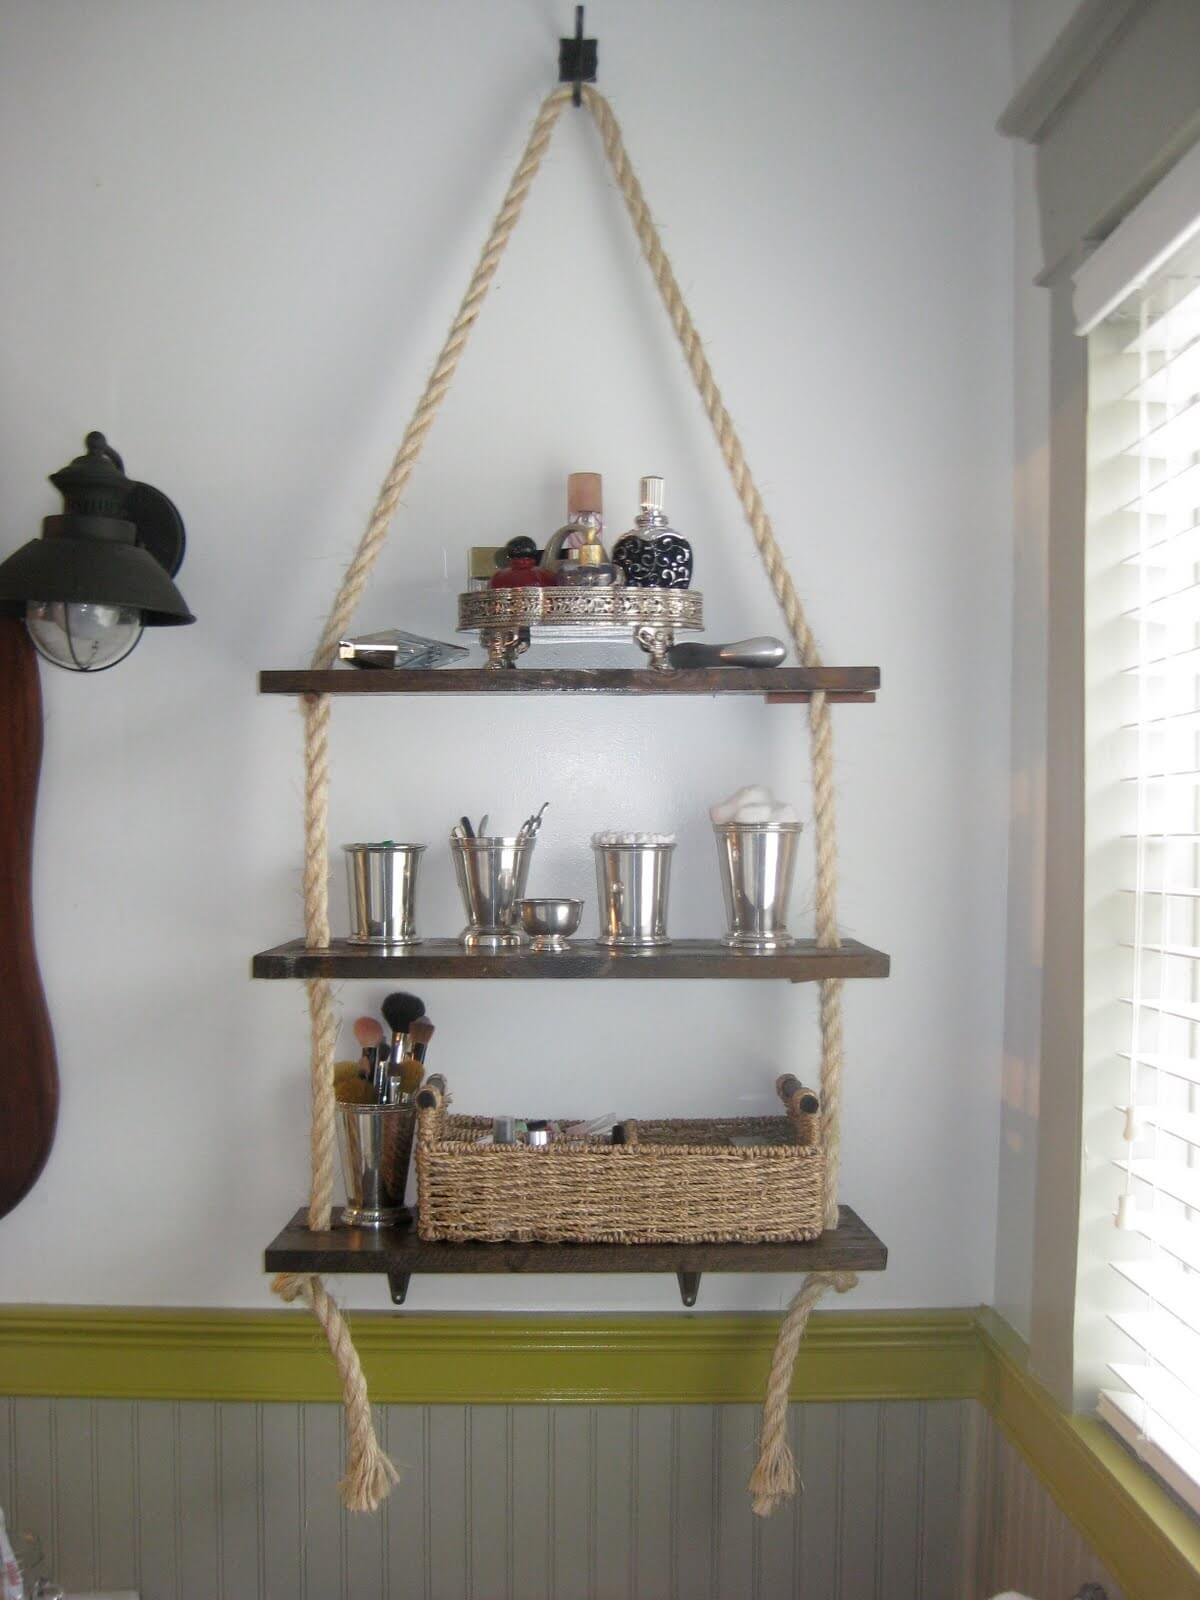 Hanging Bathroom Shelf with Nautical Rope — Homebnc